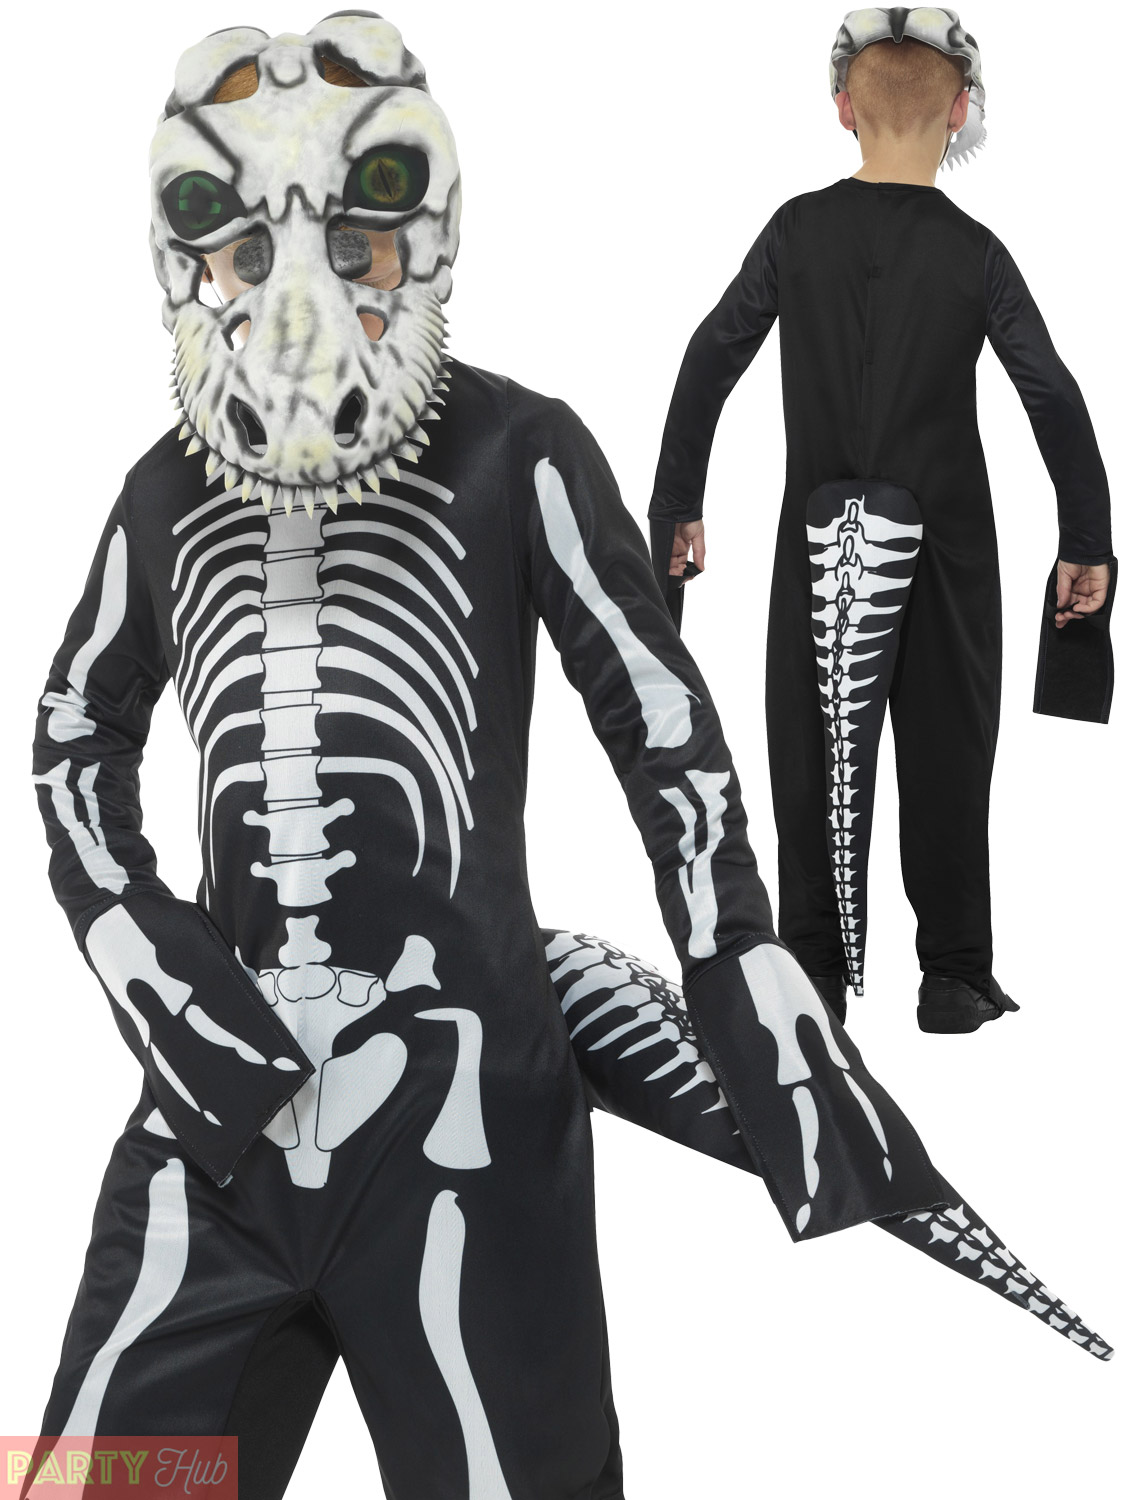 Halloween Skeleton Costume Kids.Details About Boys T Rex Skeleton Costume Kids Dinosaur Zombie Halloween Fancy Dress Outfit